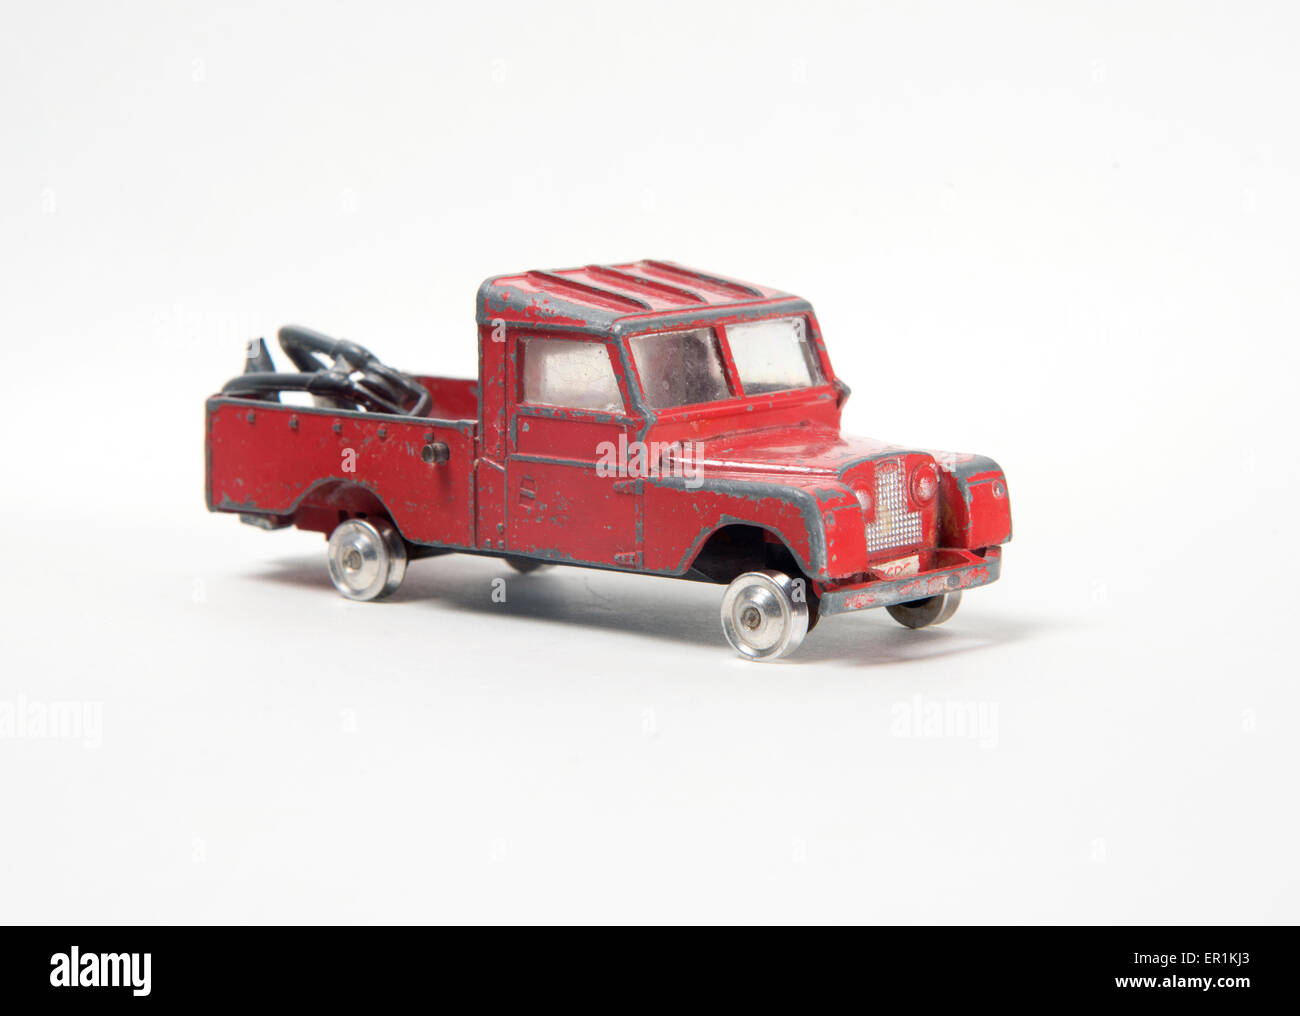 Very battered old toy car, Corgi Toys model 477, Series II Land Rover pick  up tow truck